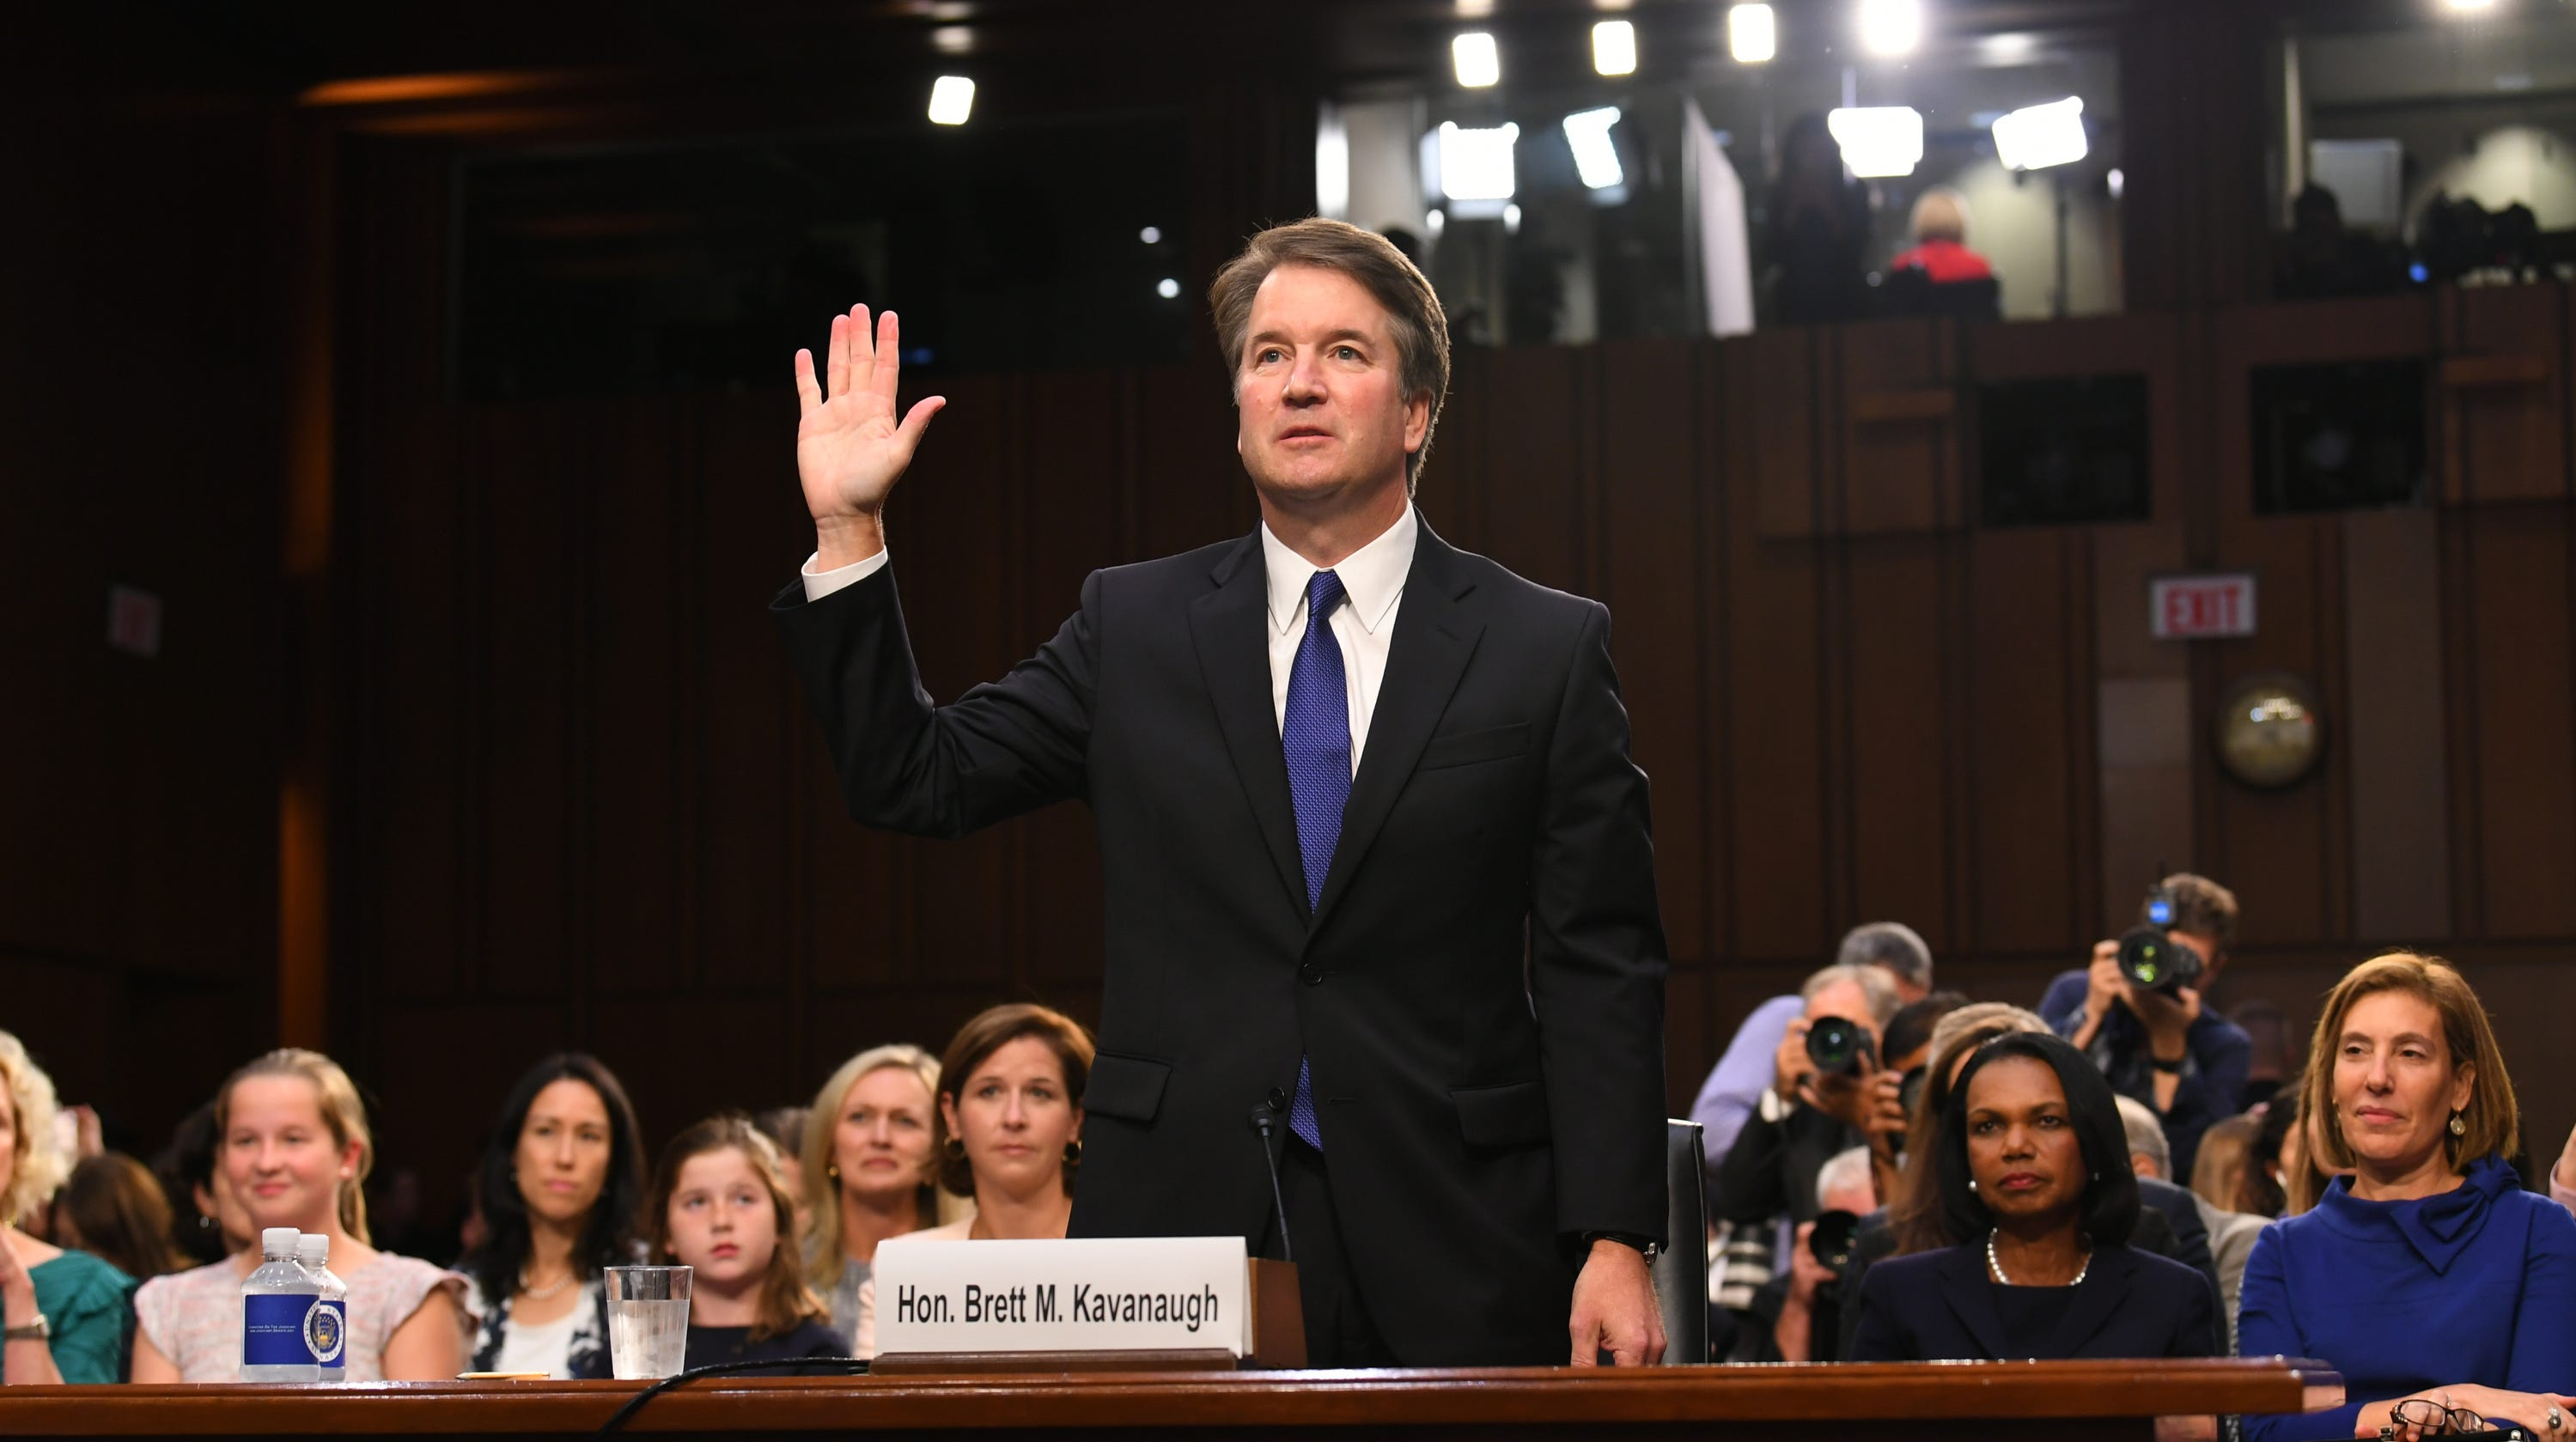 Republicans insist on strict timetable to hear out Kavanaugh's accuser: 'Monday is her opportunity'